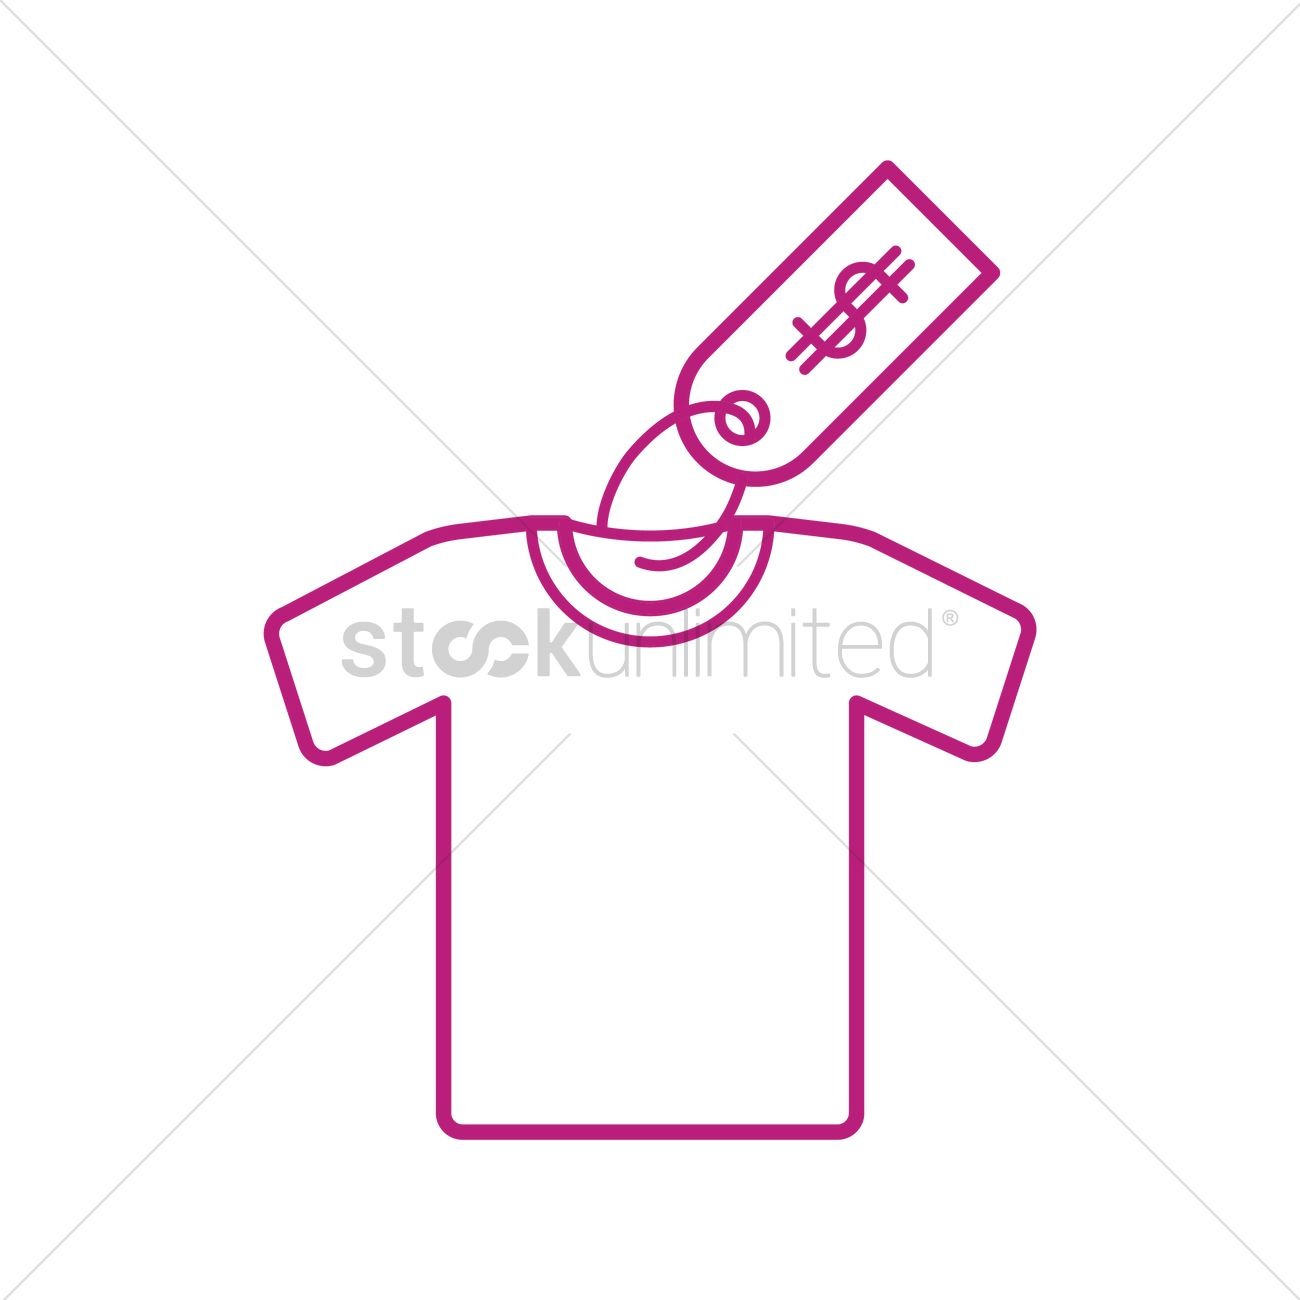 T-shirt with price tag Vector Image - 1591405 | StockUnlimited